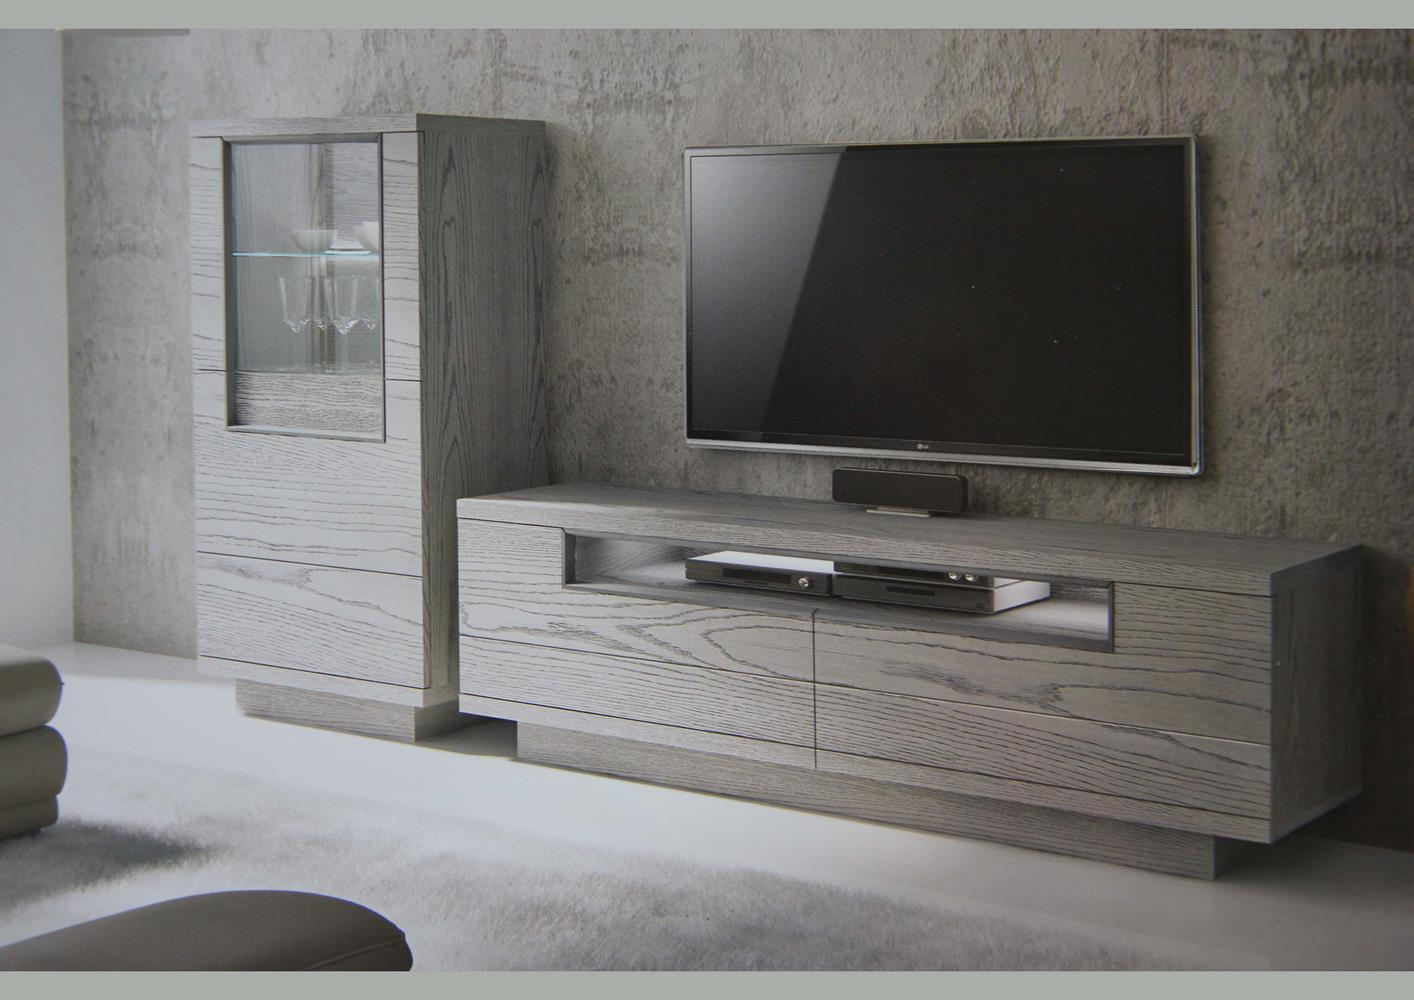 acheter votre meuble tv contemporain bois gris 2 portes 1 niche chez simeuble. Black Bedroom Furniture Sets. Home Design Ideas